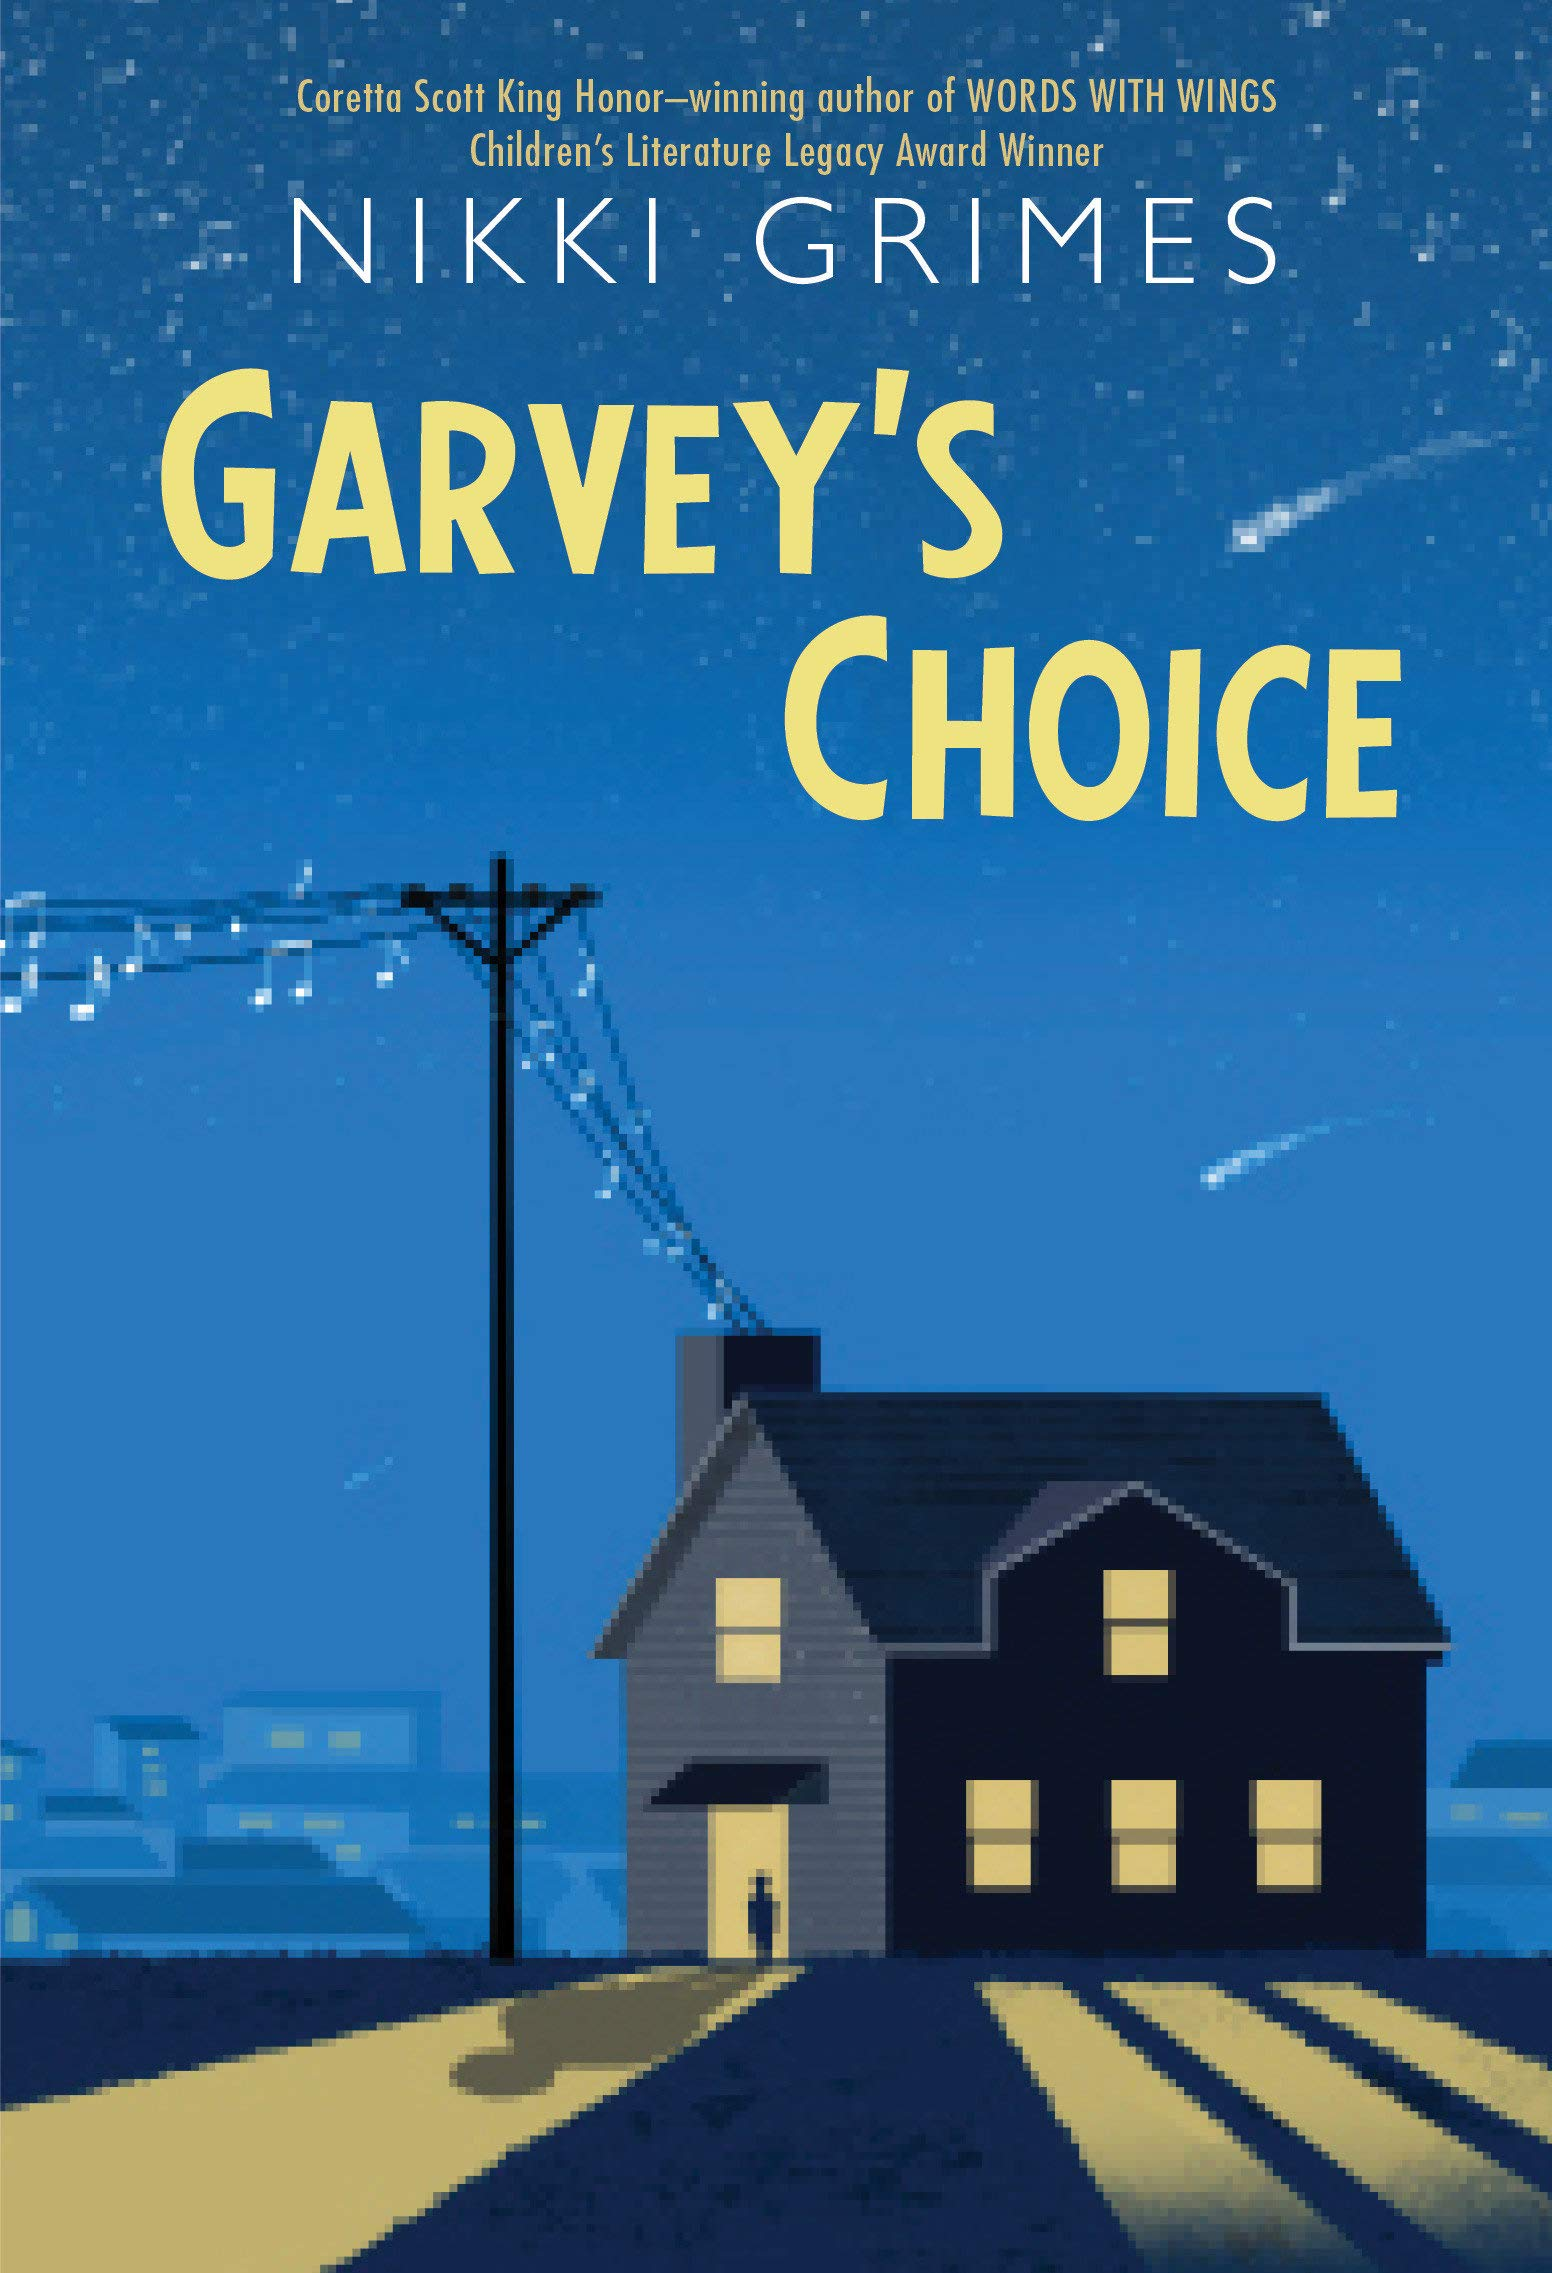 Garvey's Choice 30 of The Best Middle School Read-Aloud Books